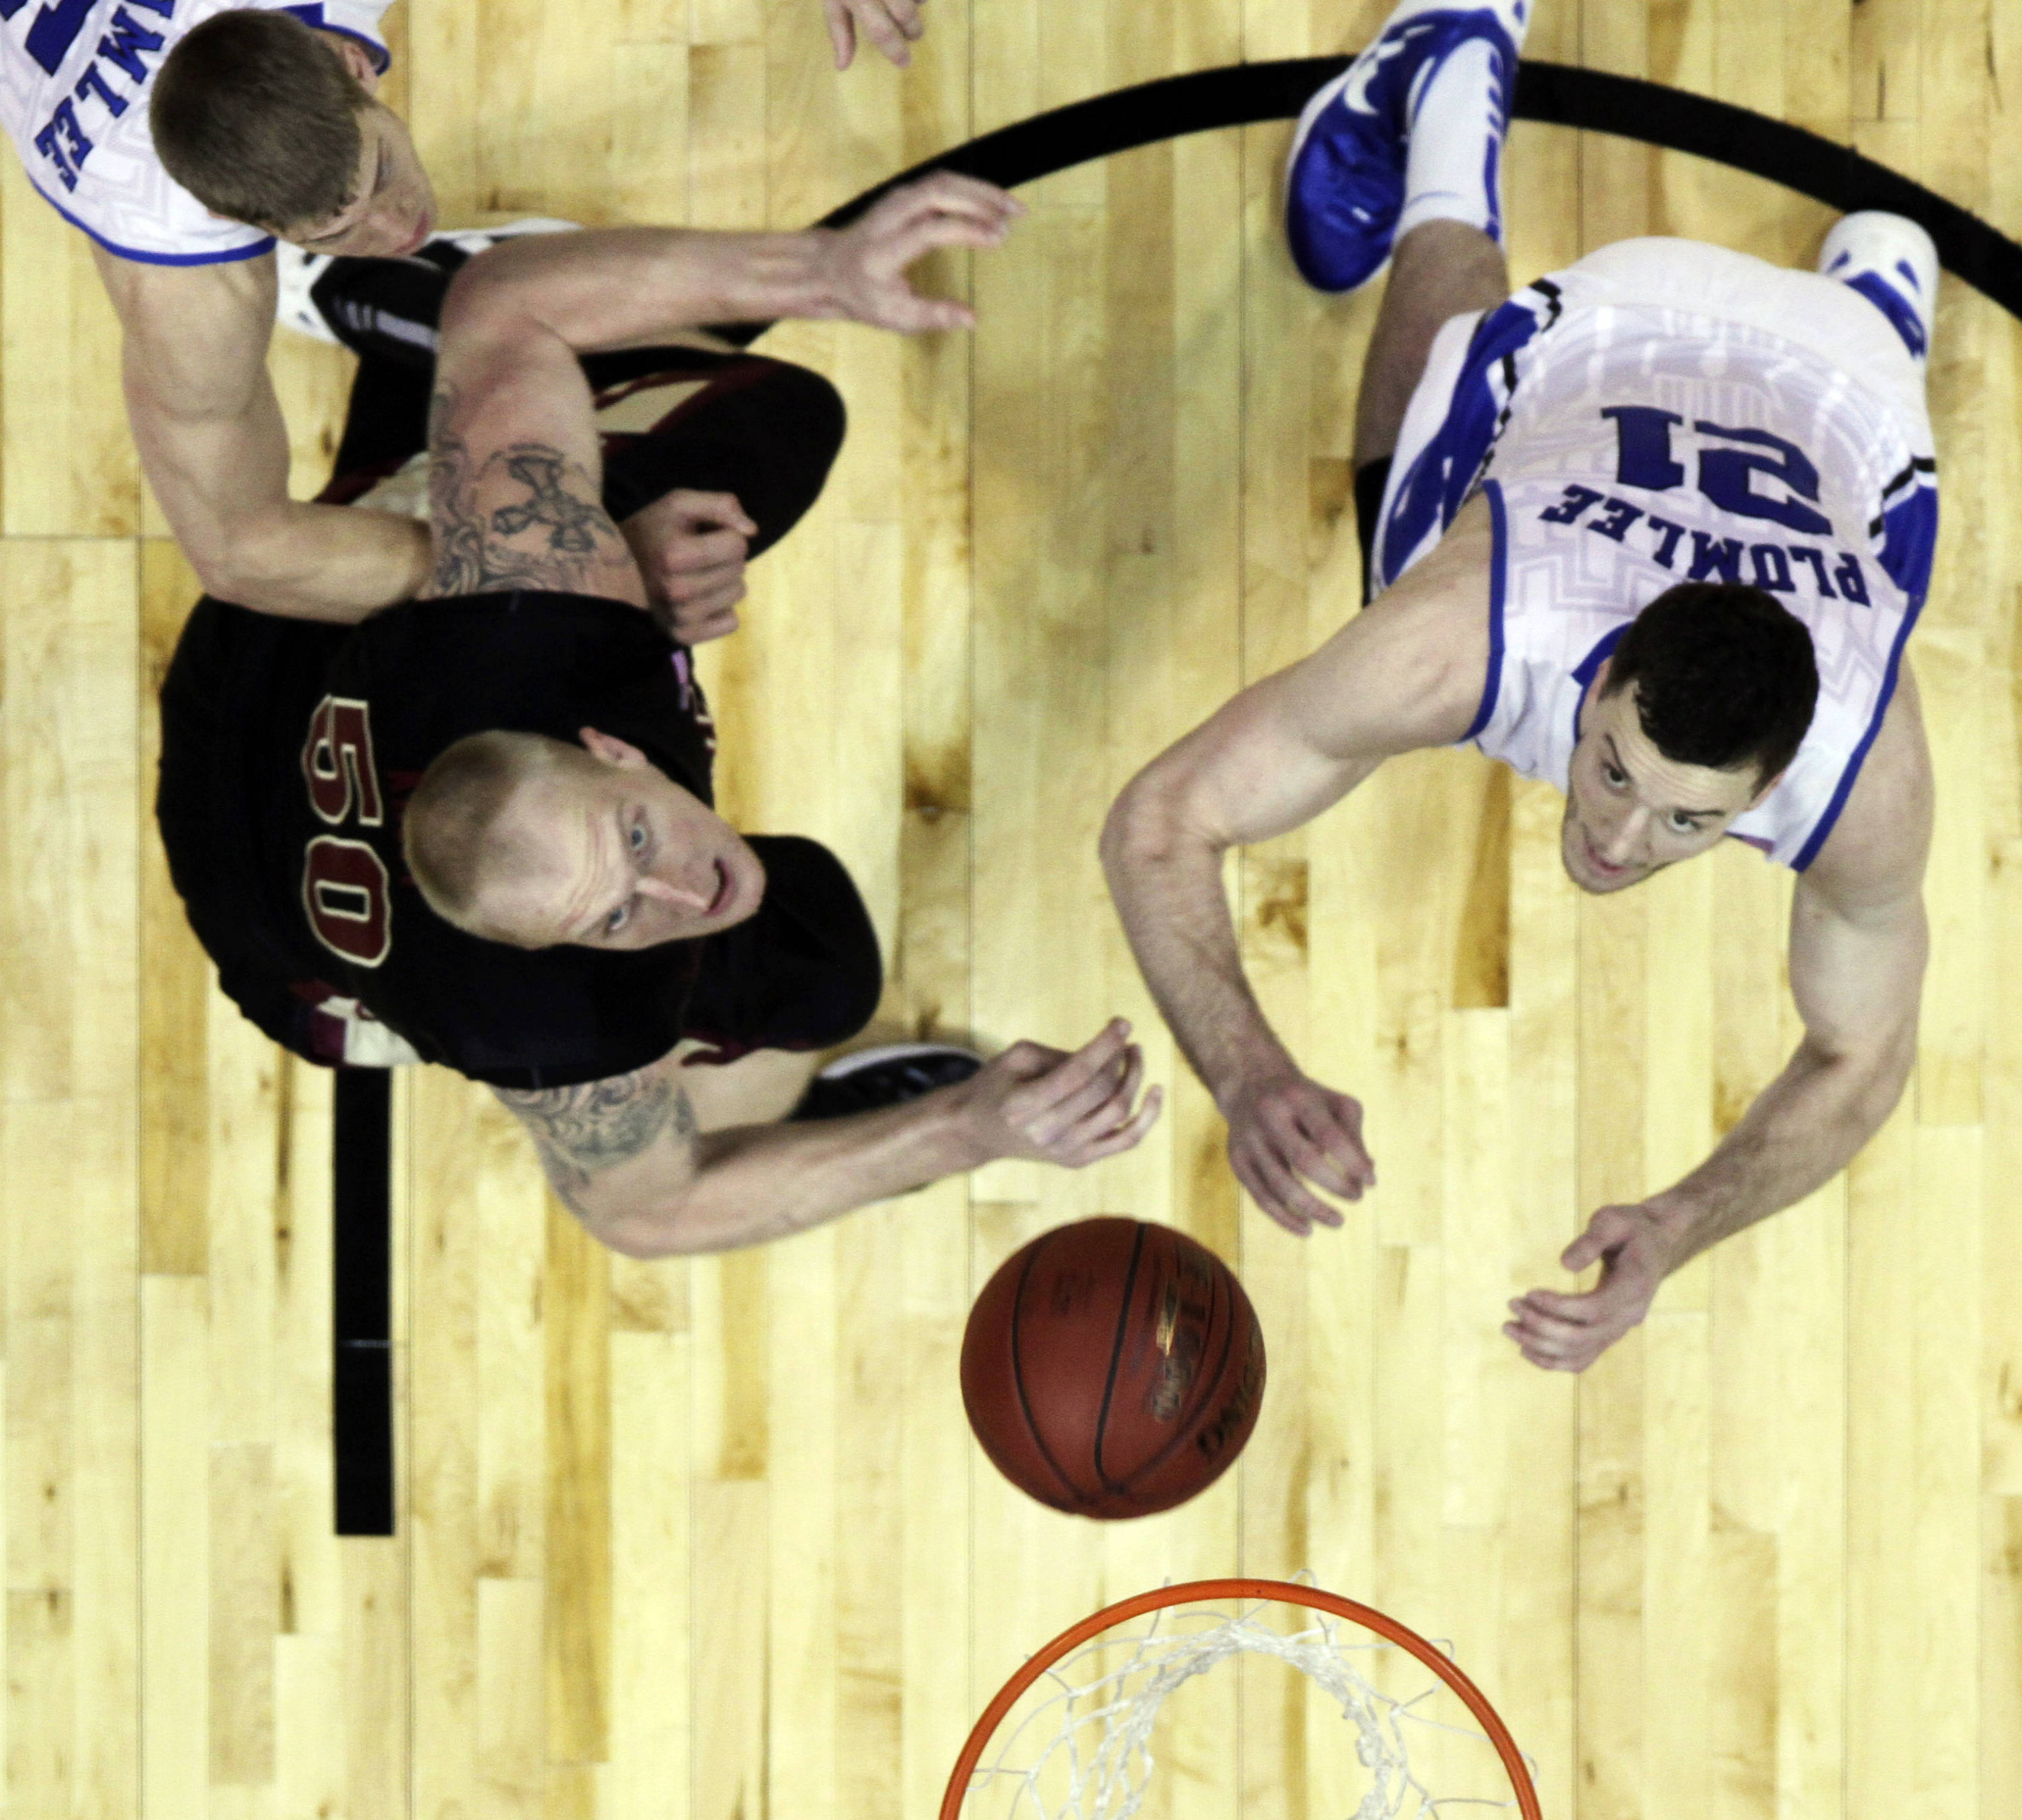 Duke forward Alex Murphy (12) and Florida State center Jon Kreft (50) wait for a rebound as Duke forward Miles Plumlee looks on during the first half of an NCAA college basketball game in the semifinals of the Atlantic Coast Conference tournament, Saturday, March 10, 2012, in Atlanta. (AP Photo/John Bazemore)